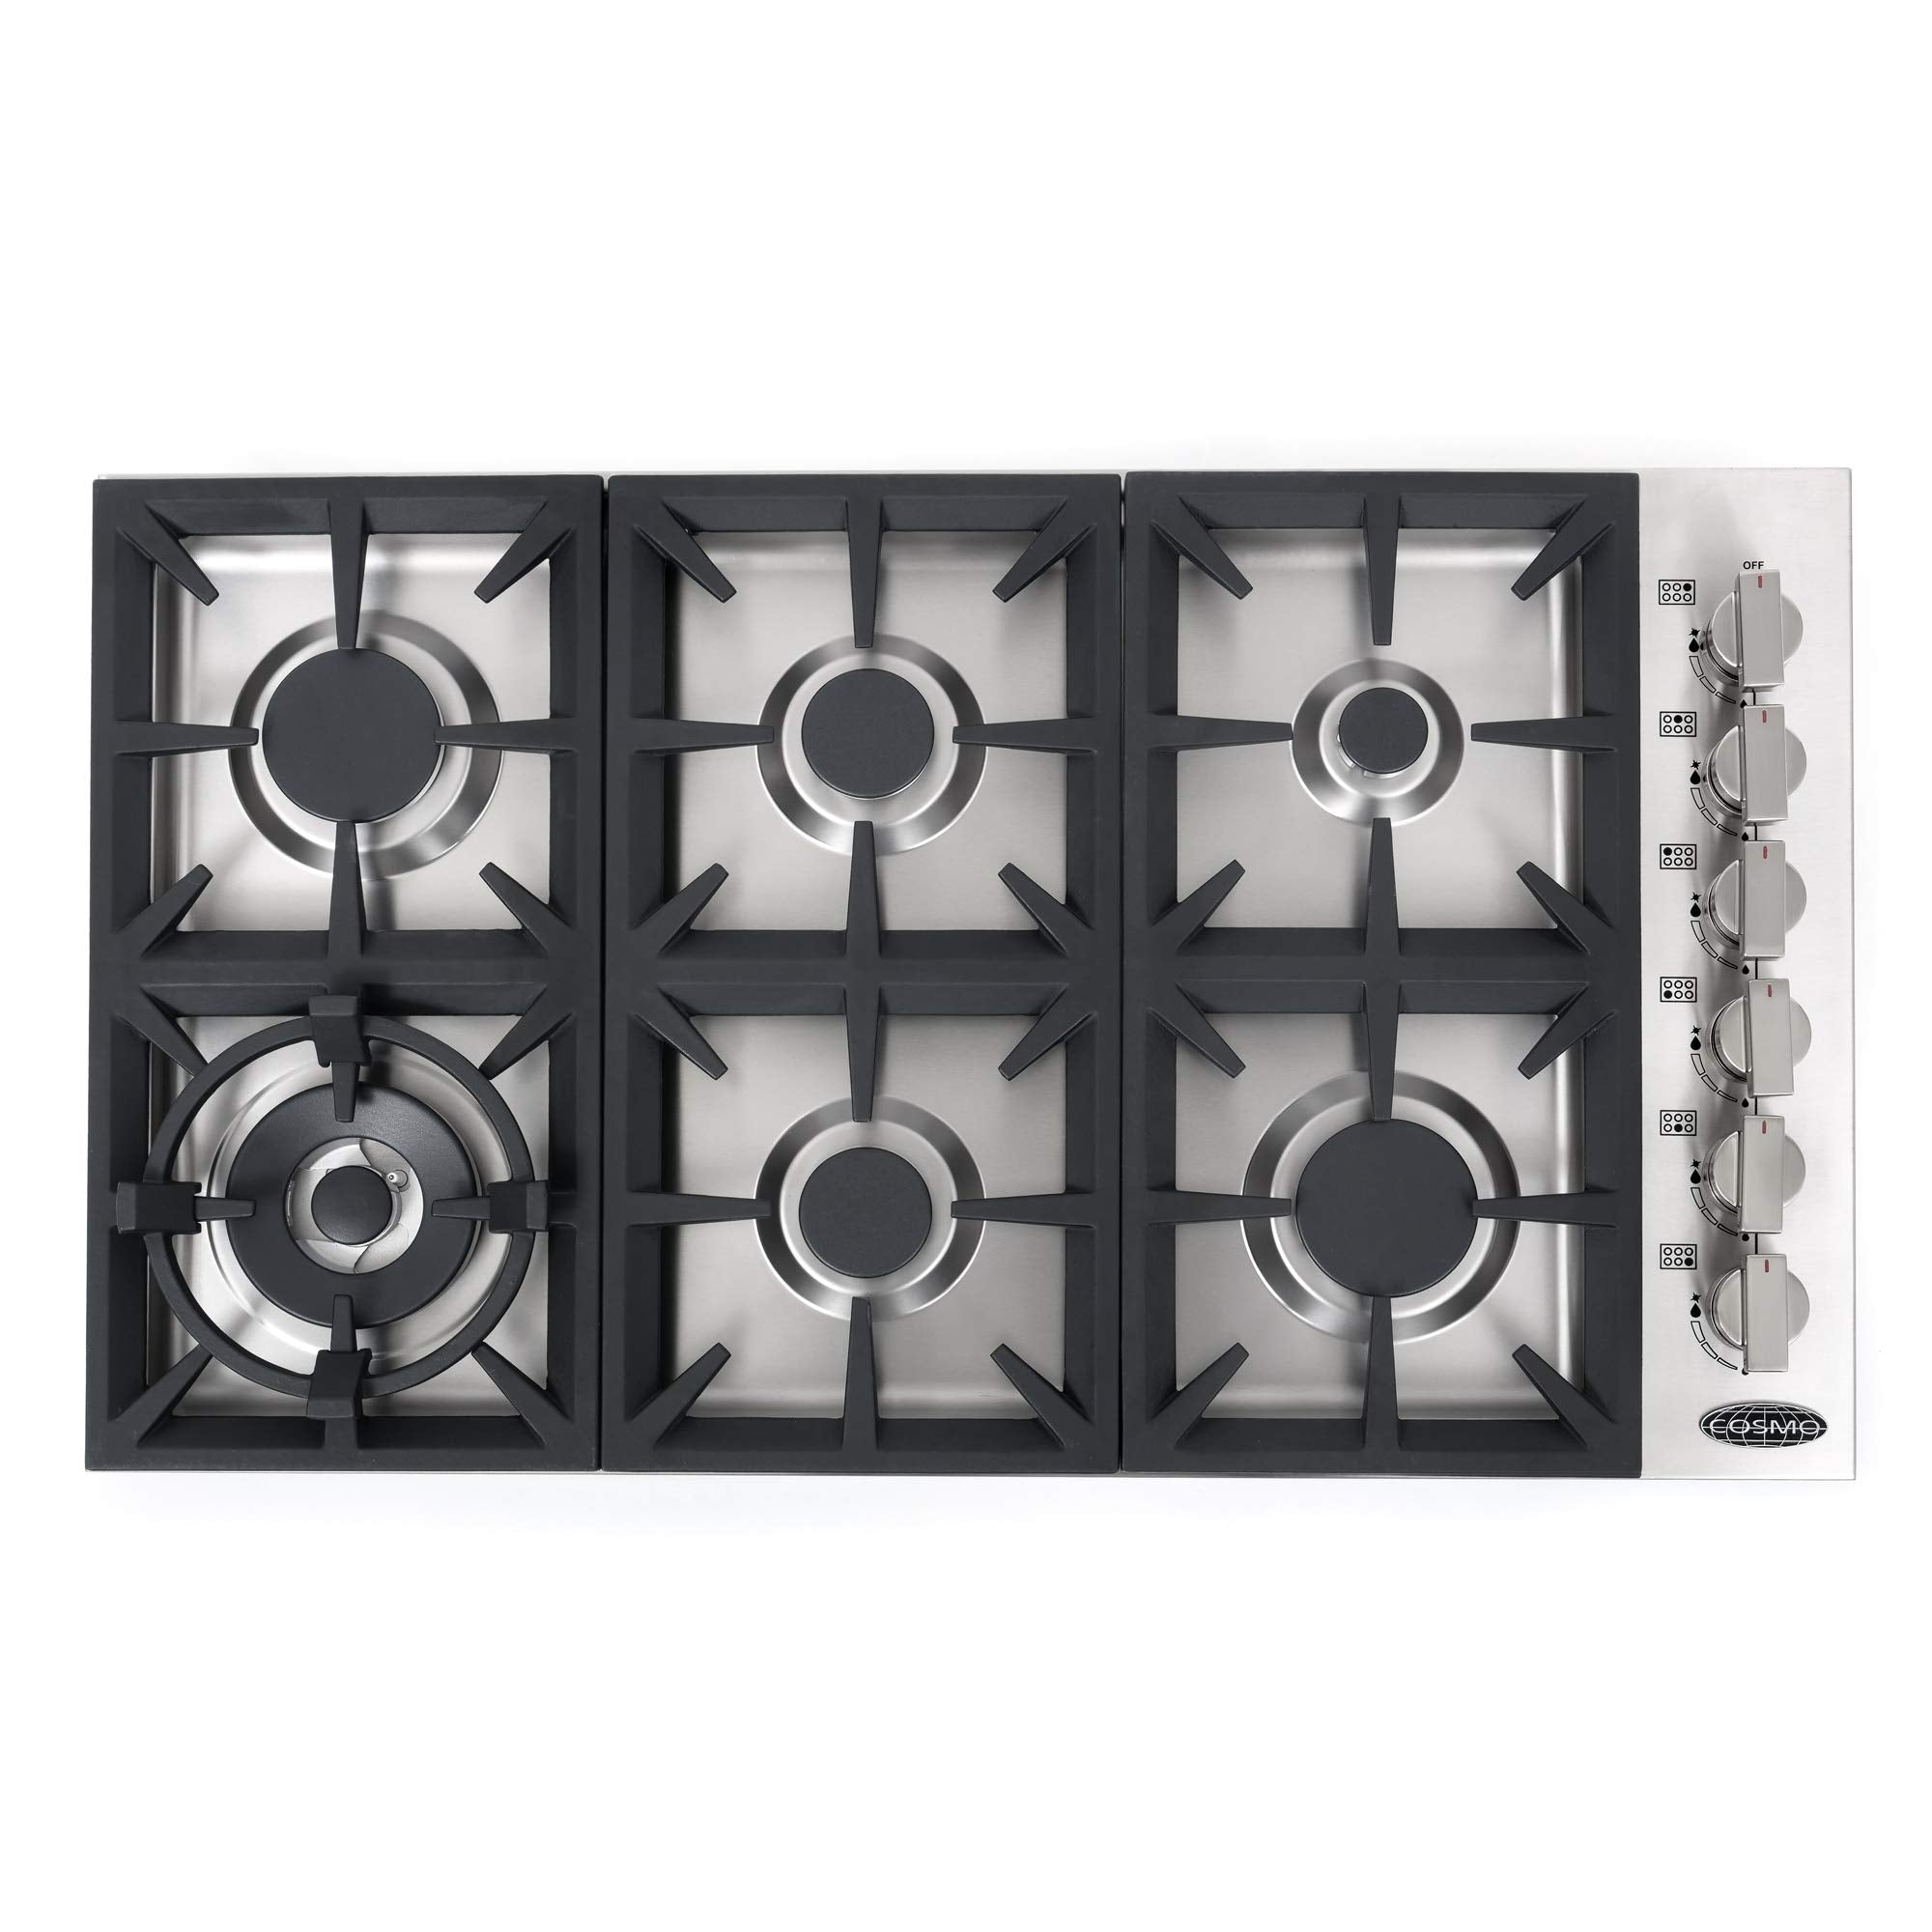 Cosmo 36 in. Gas Cooktop in Stainless Steel with 6 Italian Made Burners